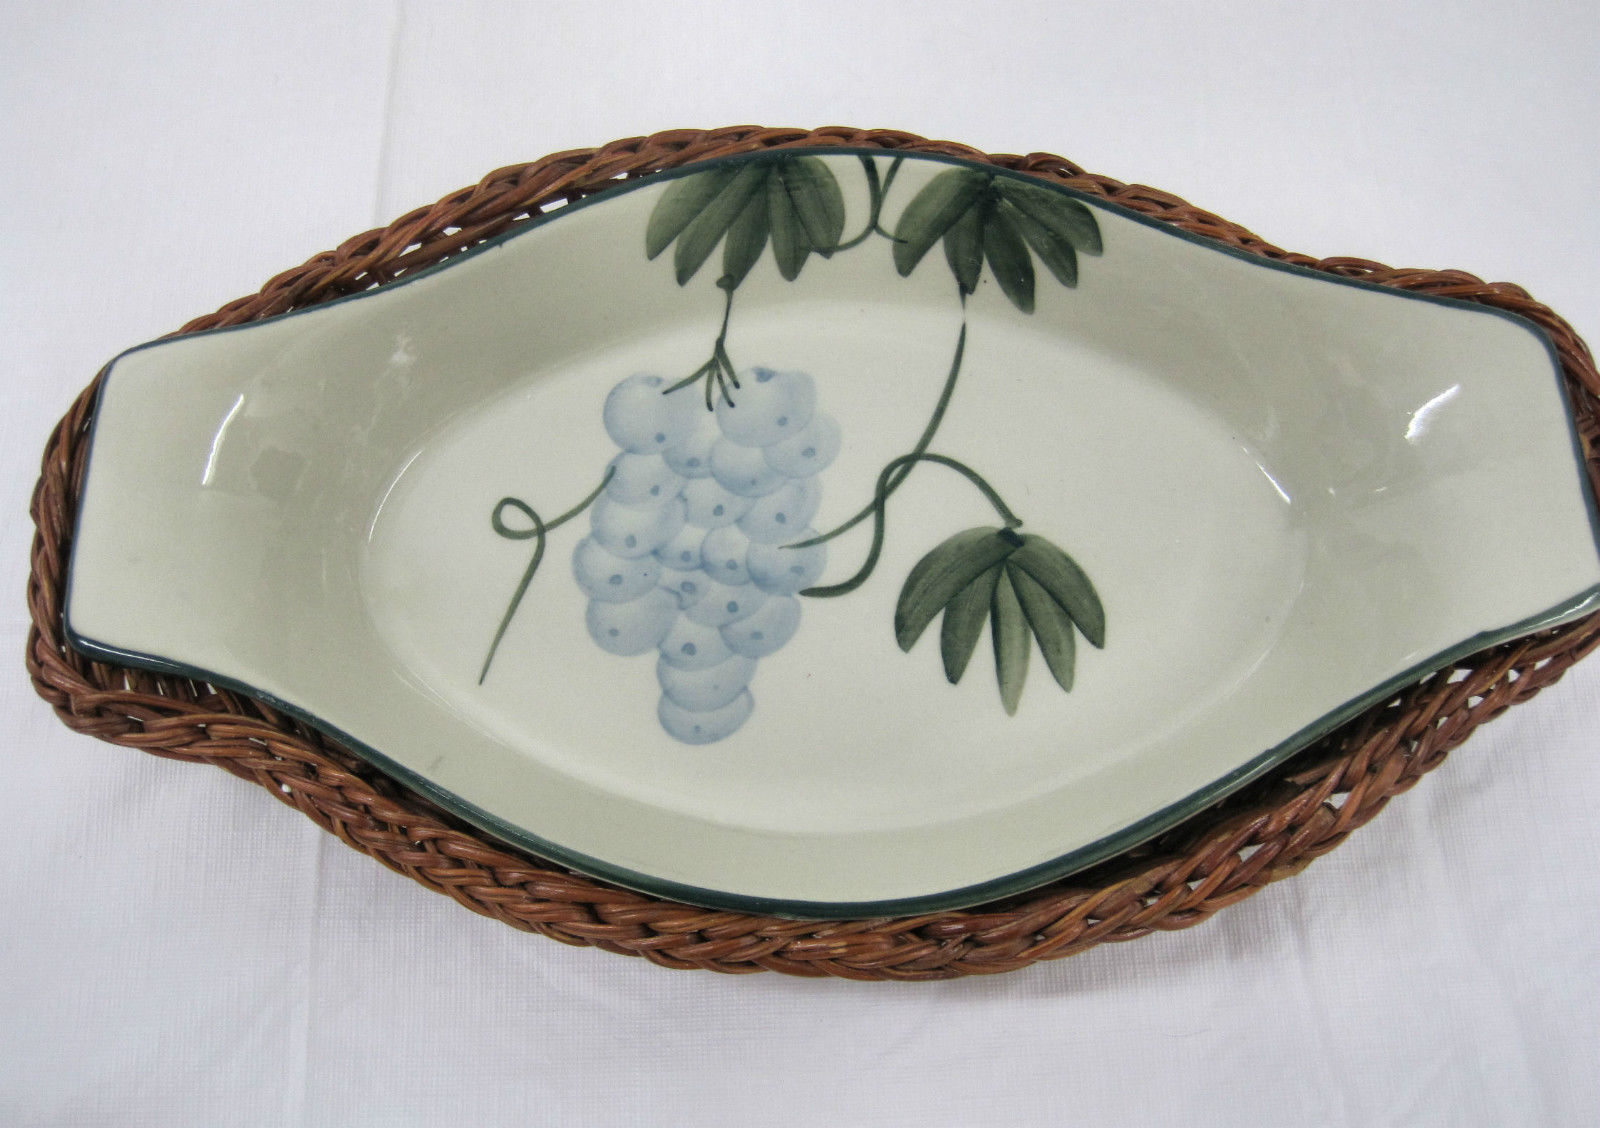 Hand Painted Grapes Pottery Serving Warming  Dish  Bowl Basket  Table Display